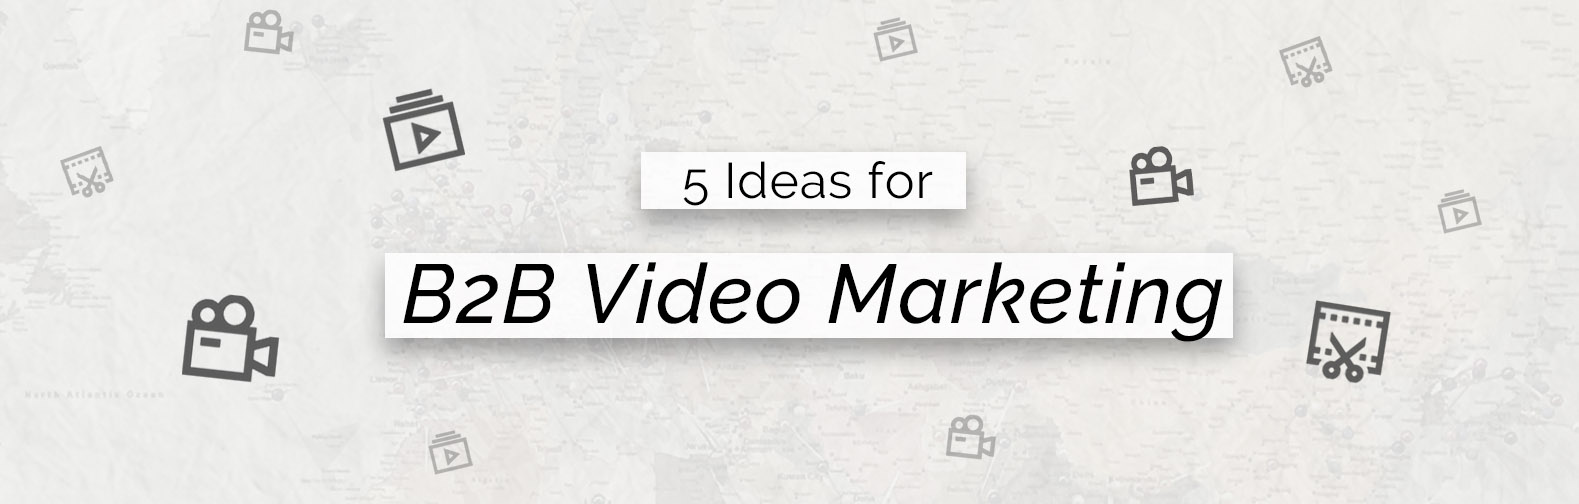 01 5 ideas for b2b video marketing_emily kay stoker_blog header.jpg